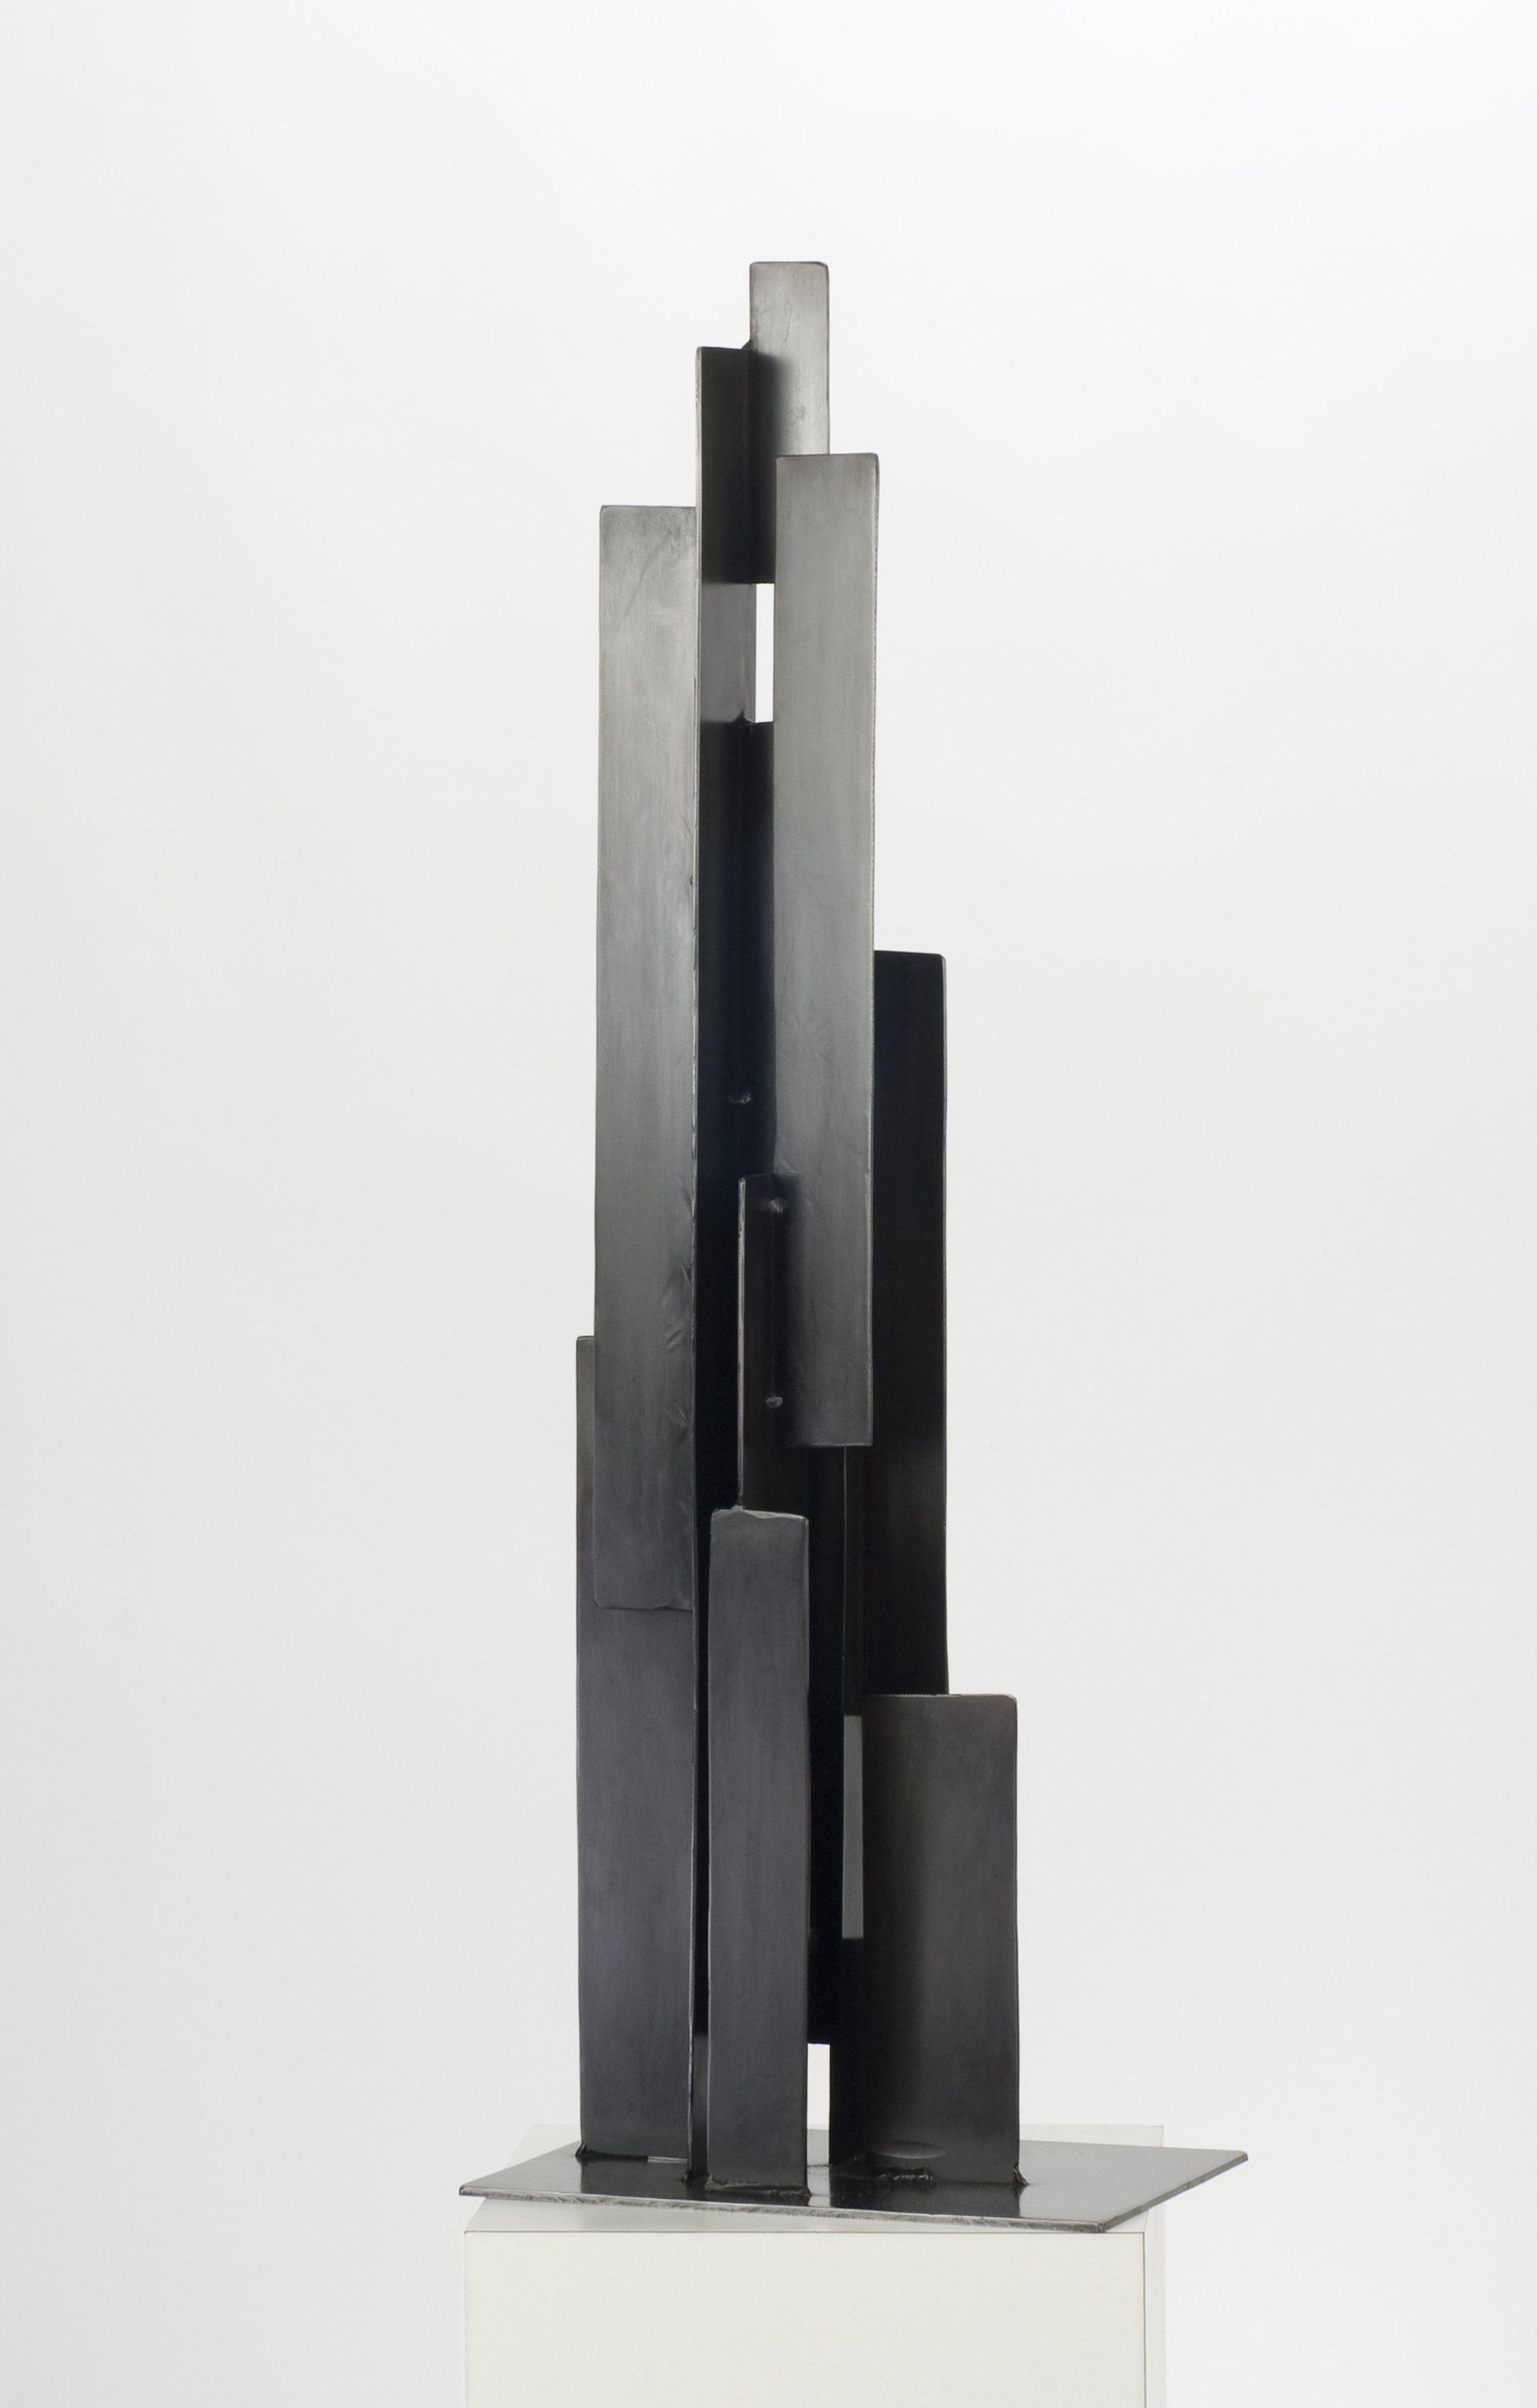 Vertical Obsession by Dennis Leri